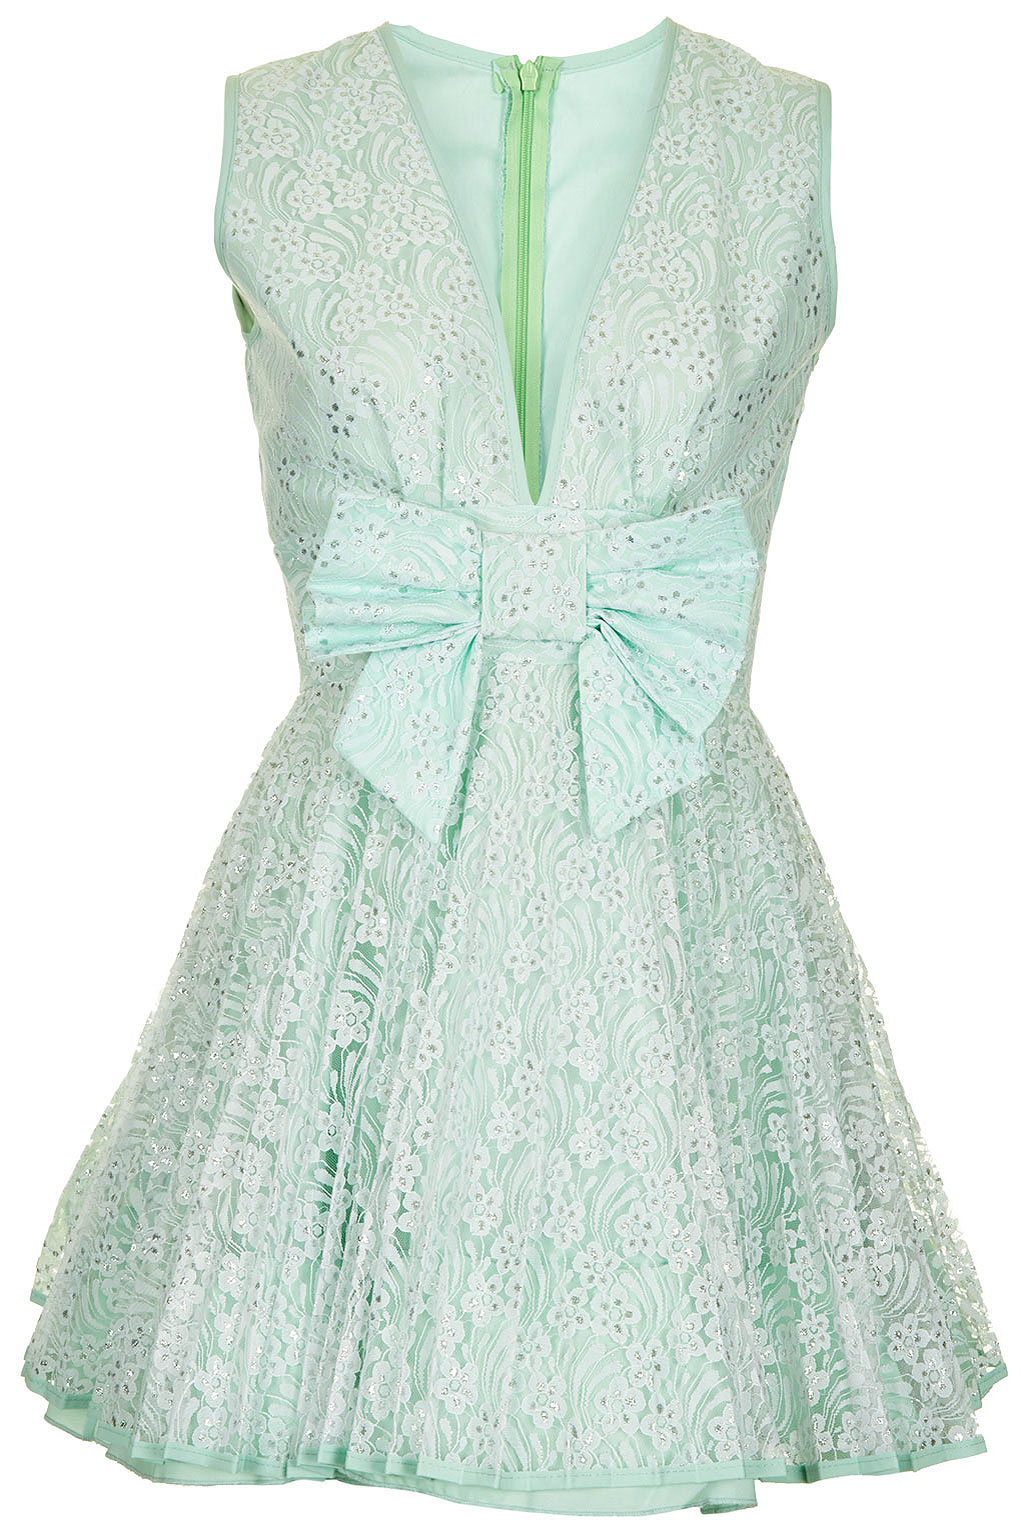 Topshop Sasha Dress By Jones and Jones in Green - Lyst